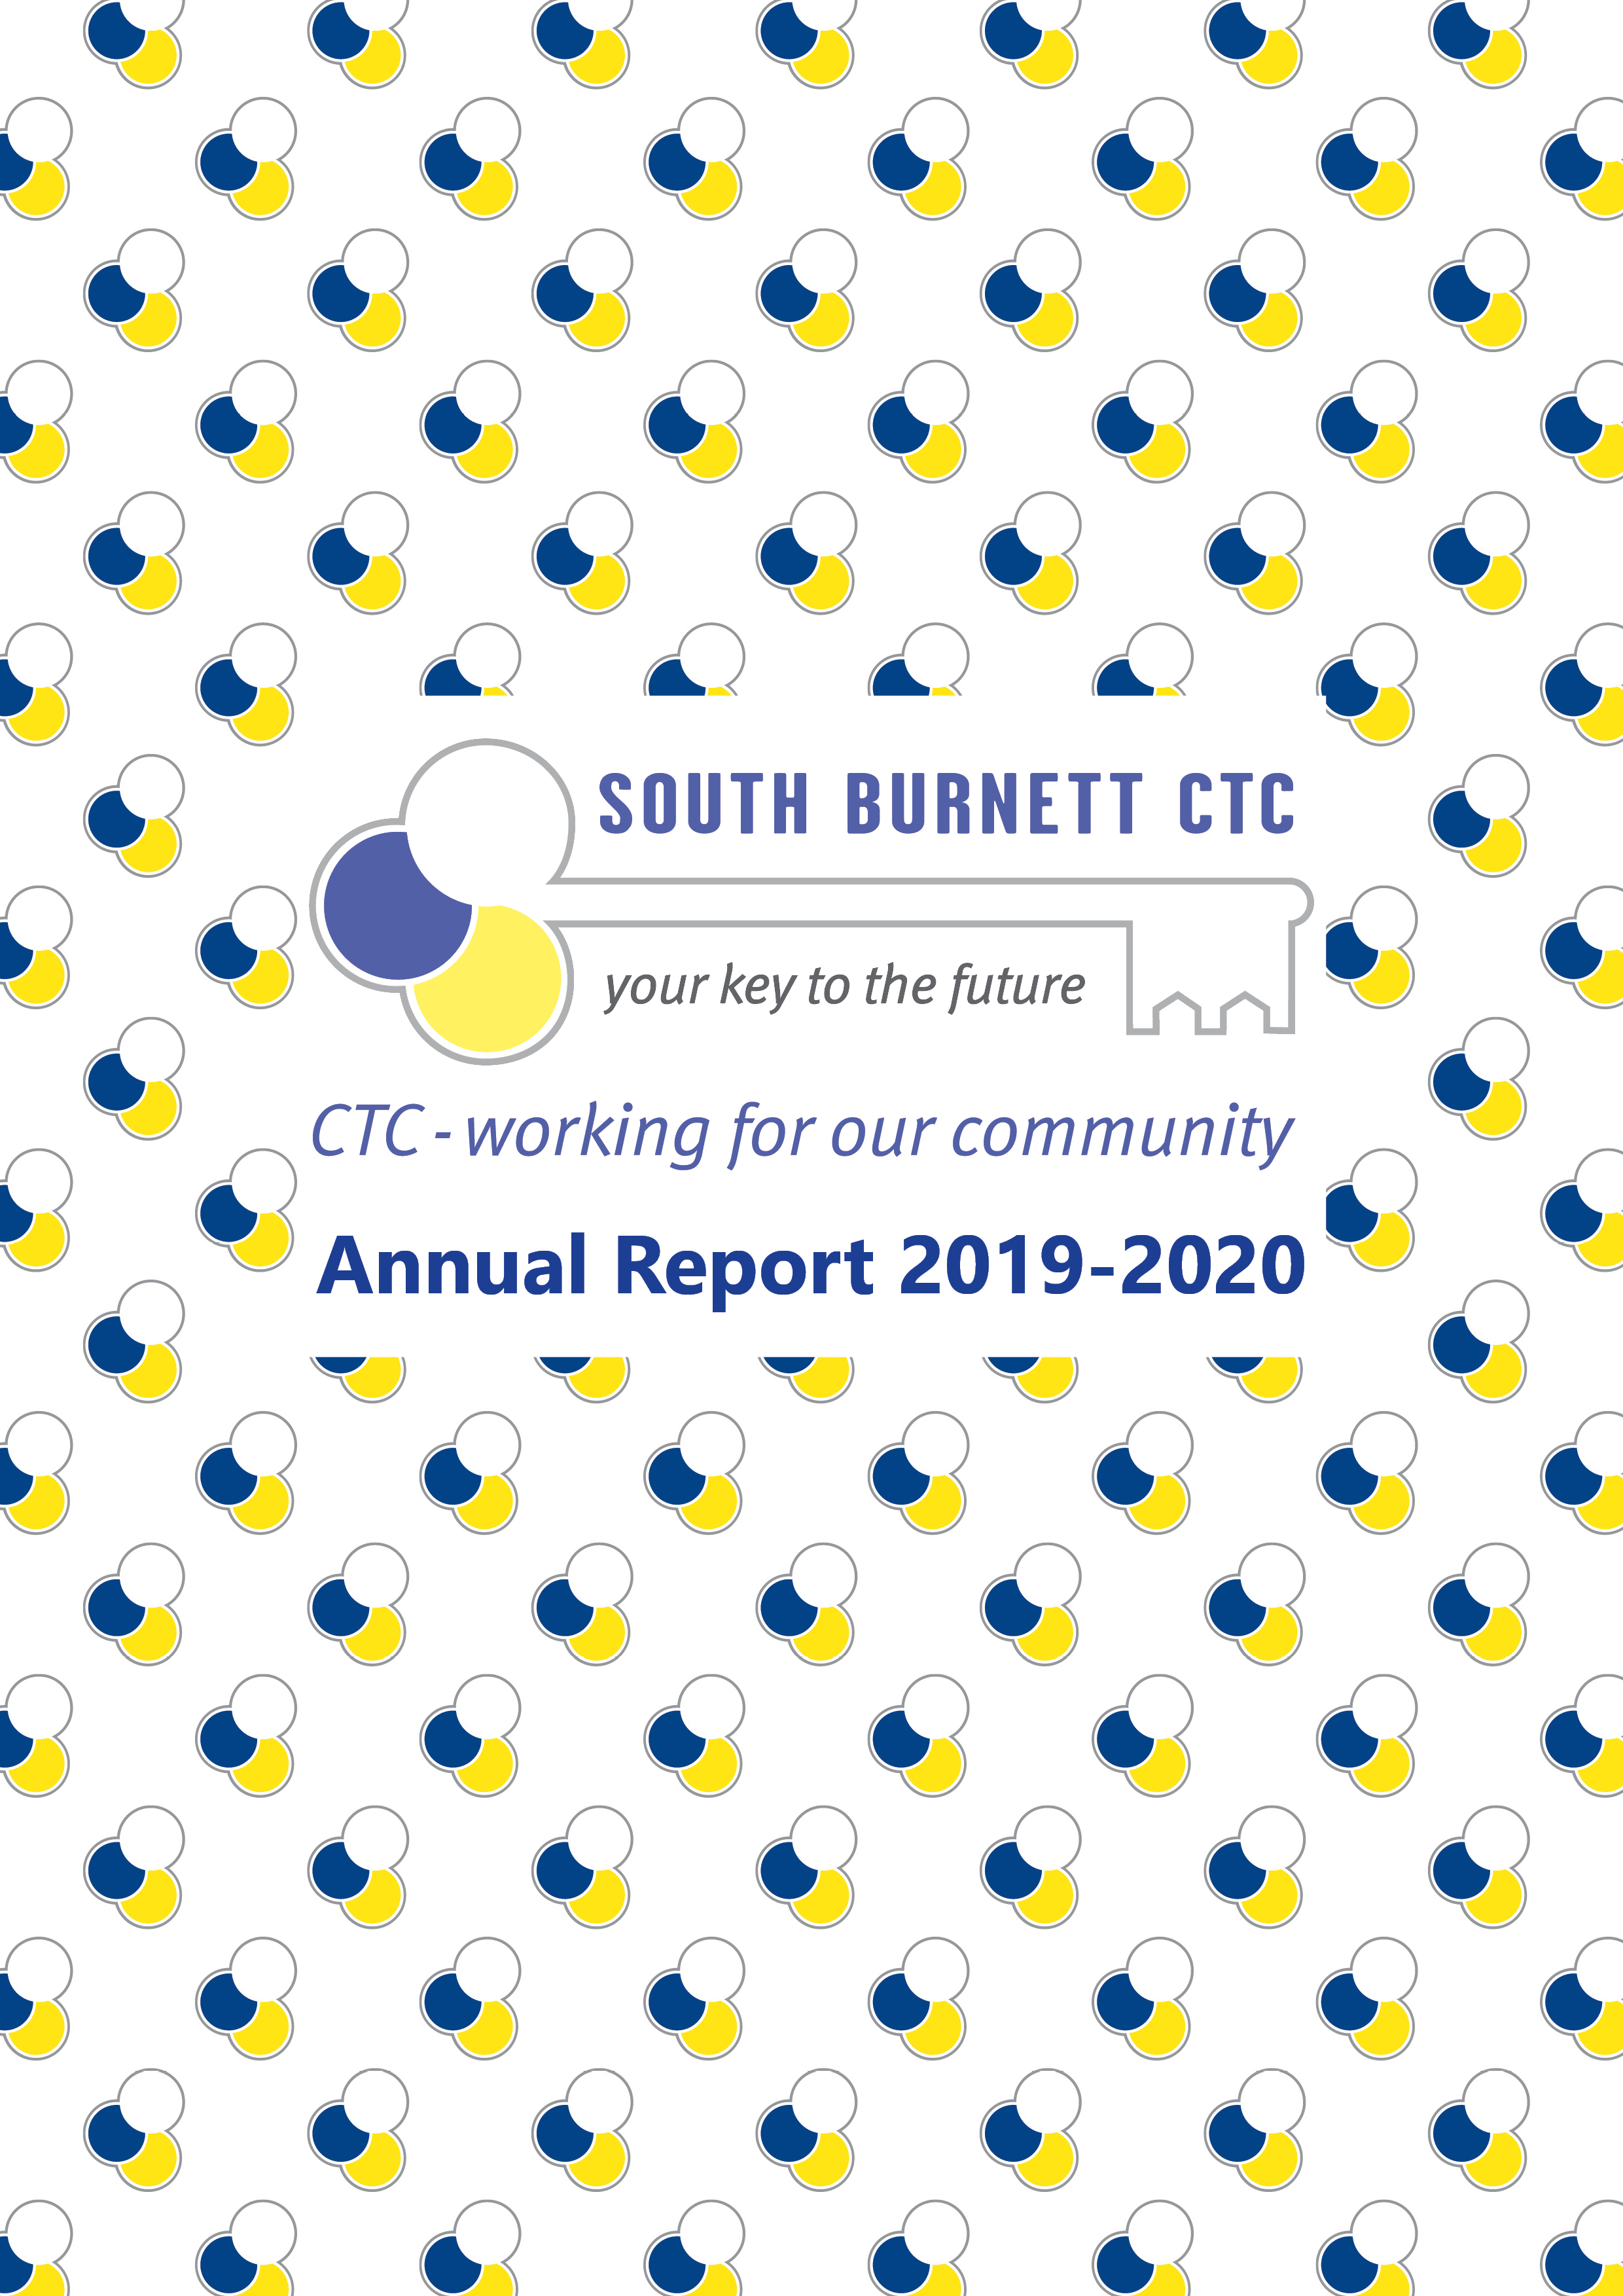 Annual Report Cover 2019-20.jpg